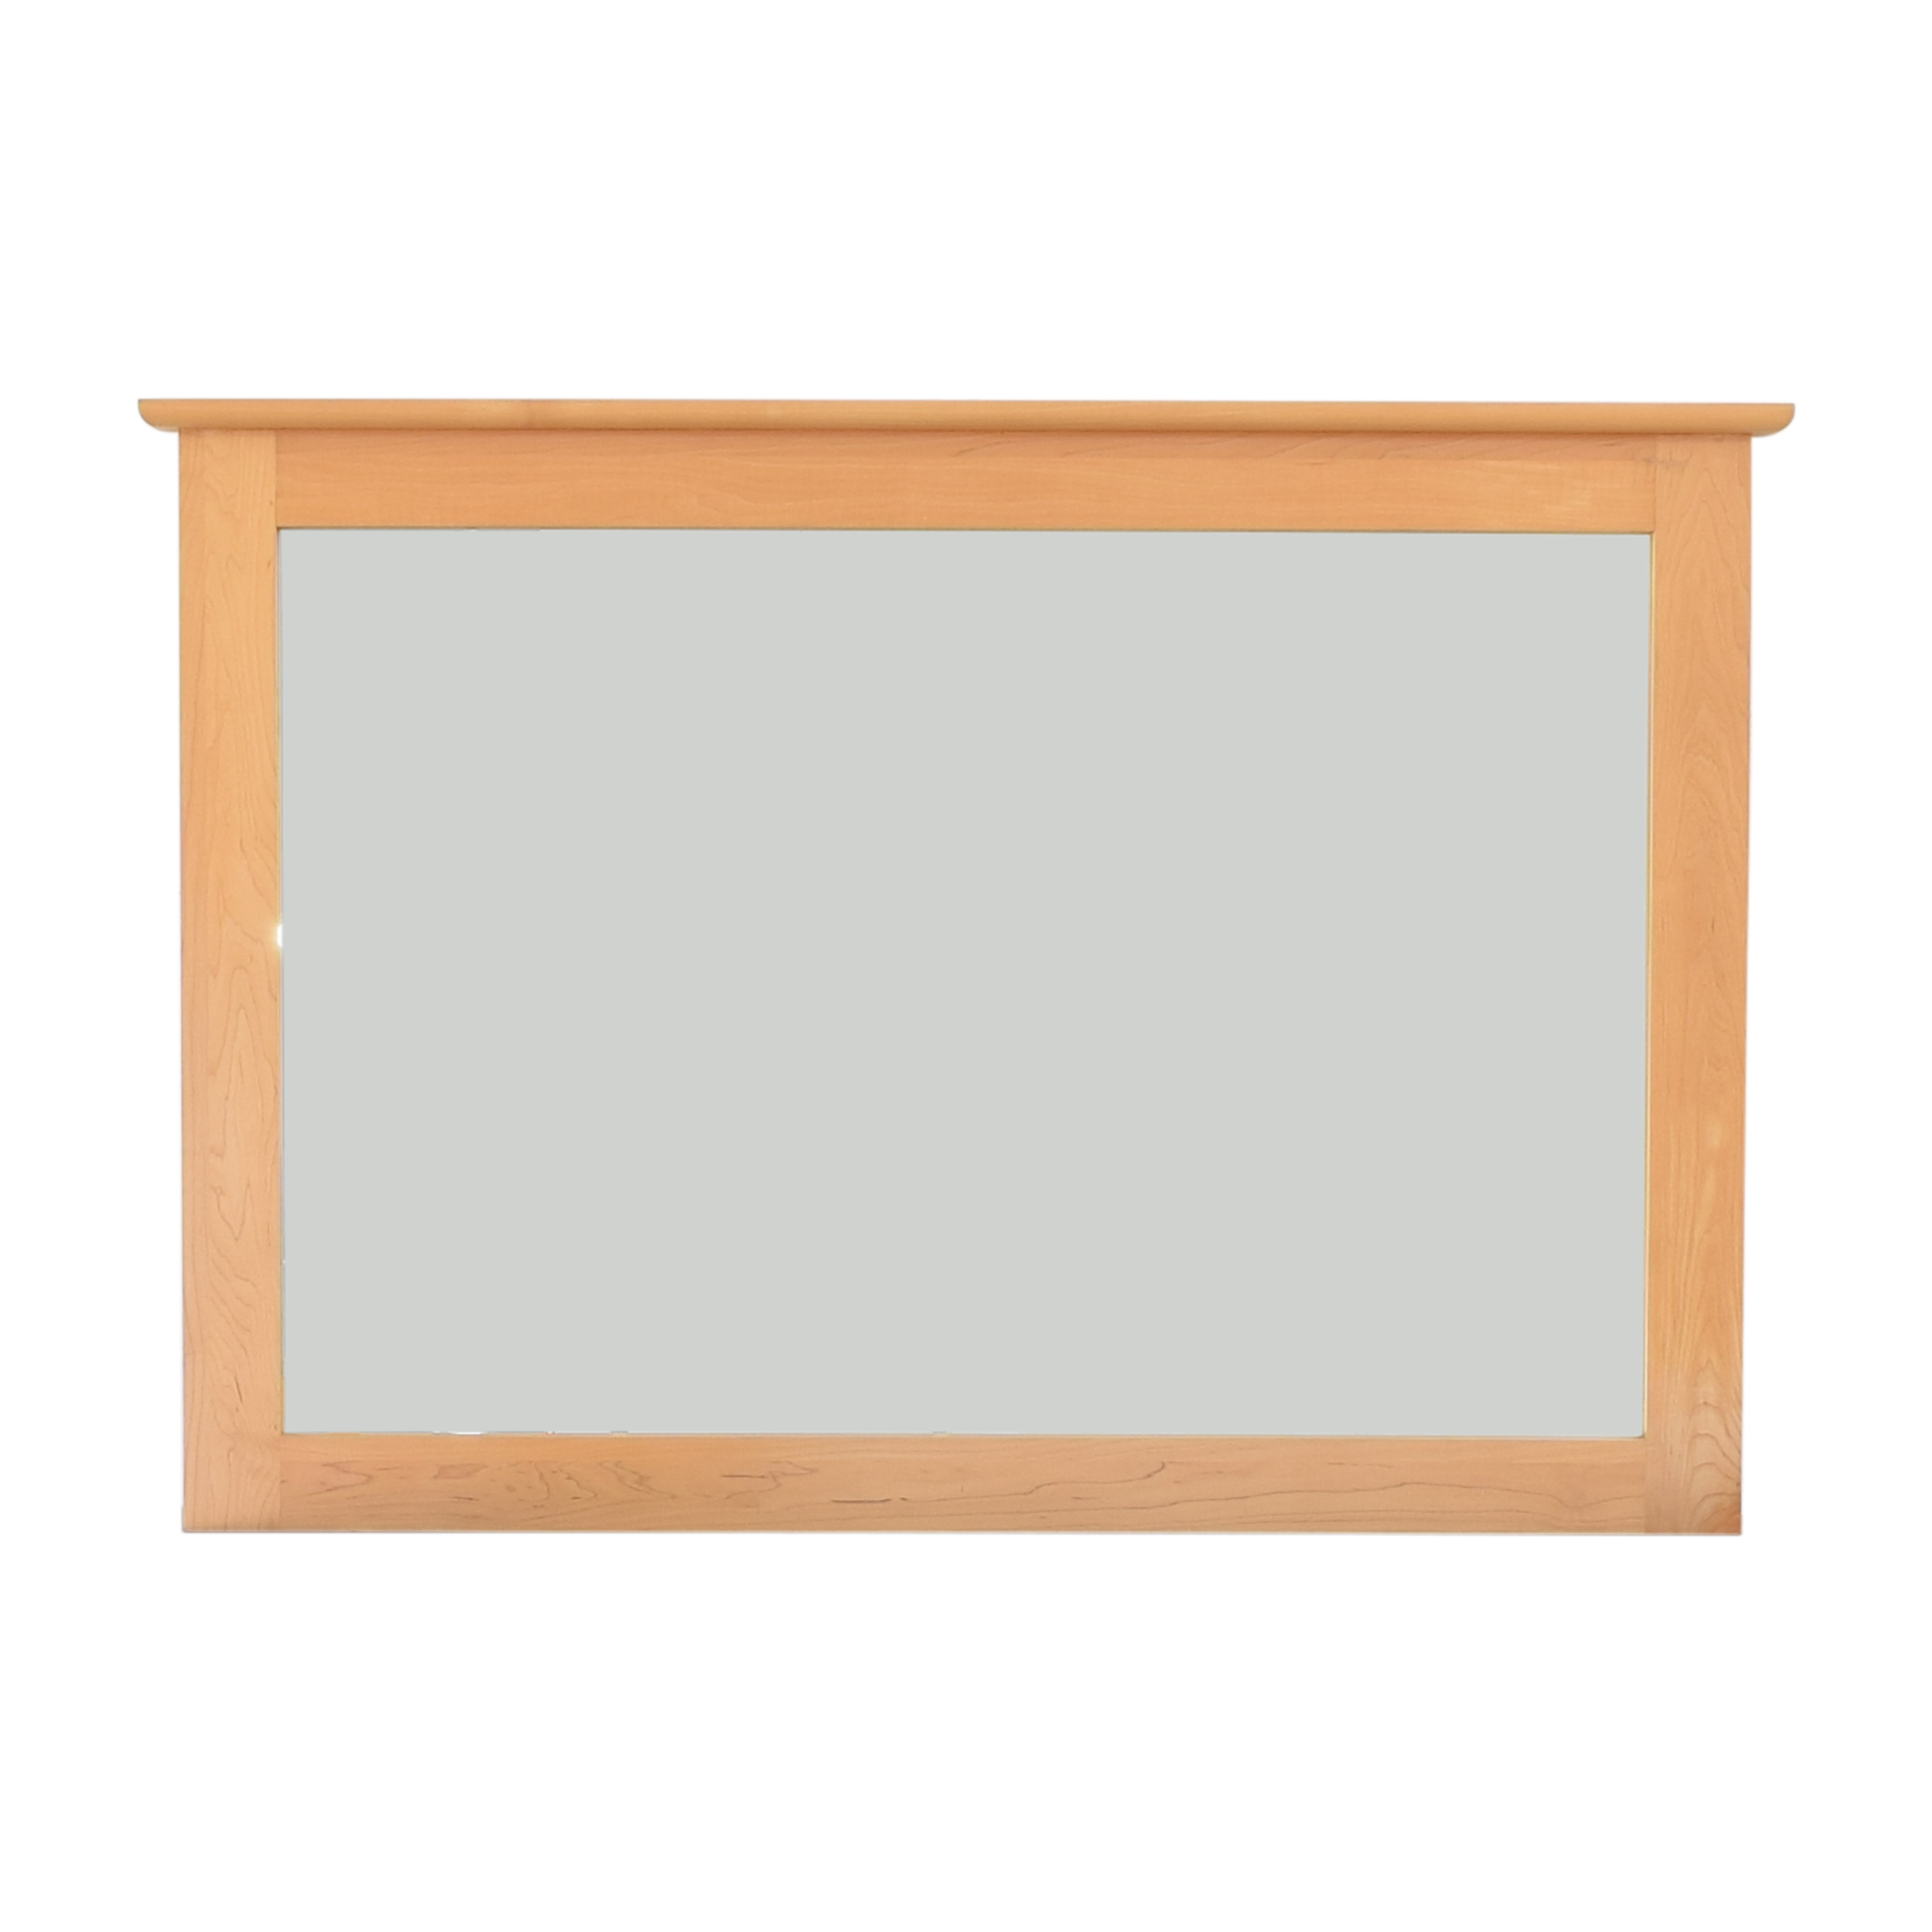 shop Crate & Barrel Framed Mirror Crate & Barrel Mirrors